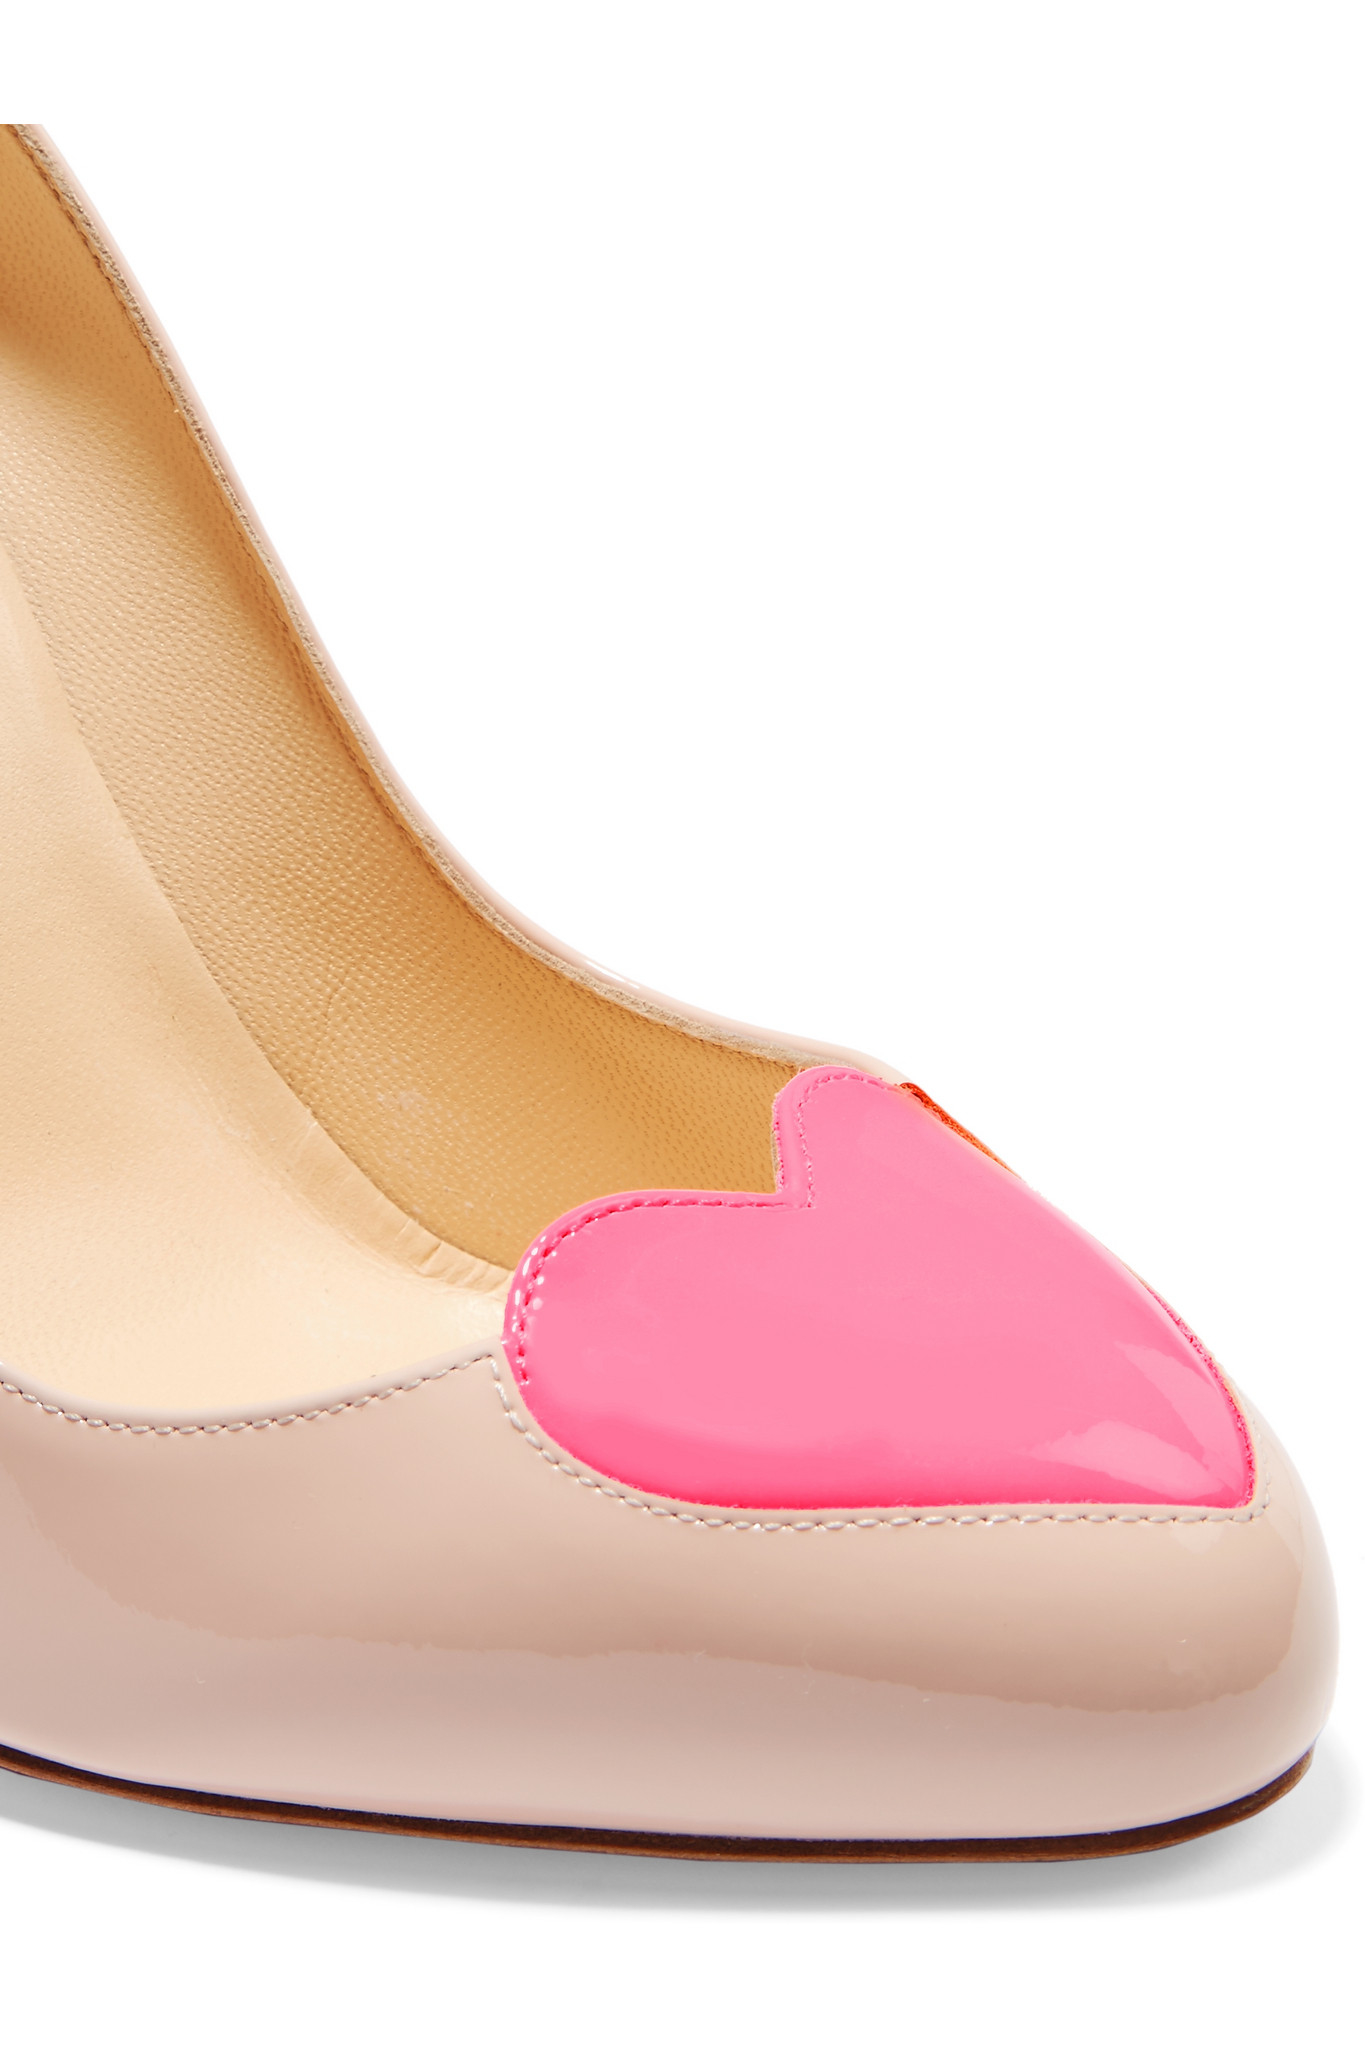 Christian Louboutin Doracora Patent Leather Pumps In Pink